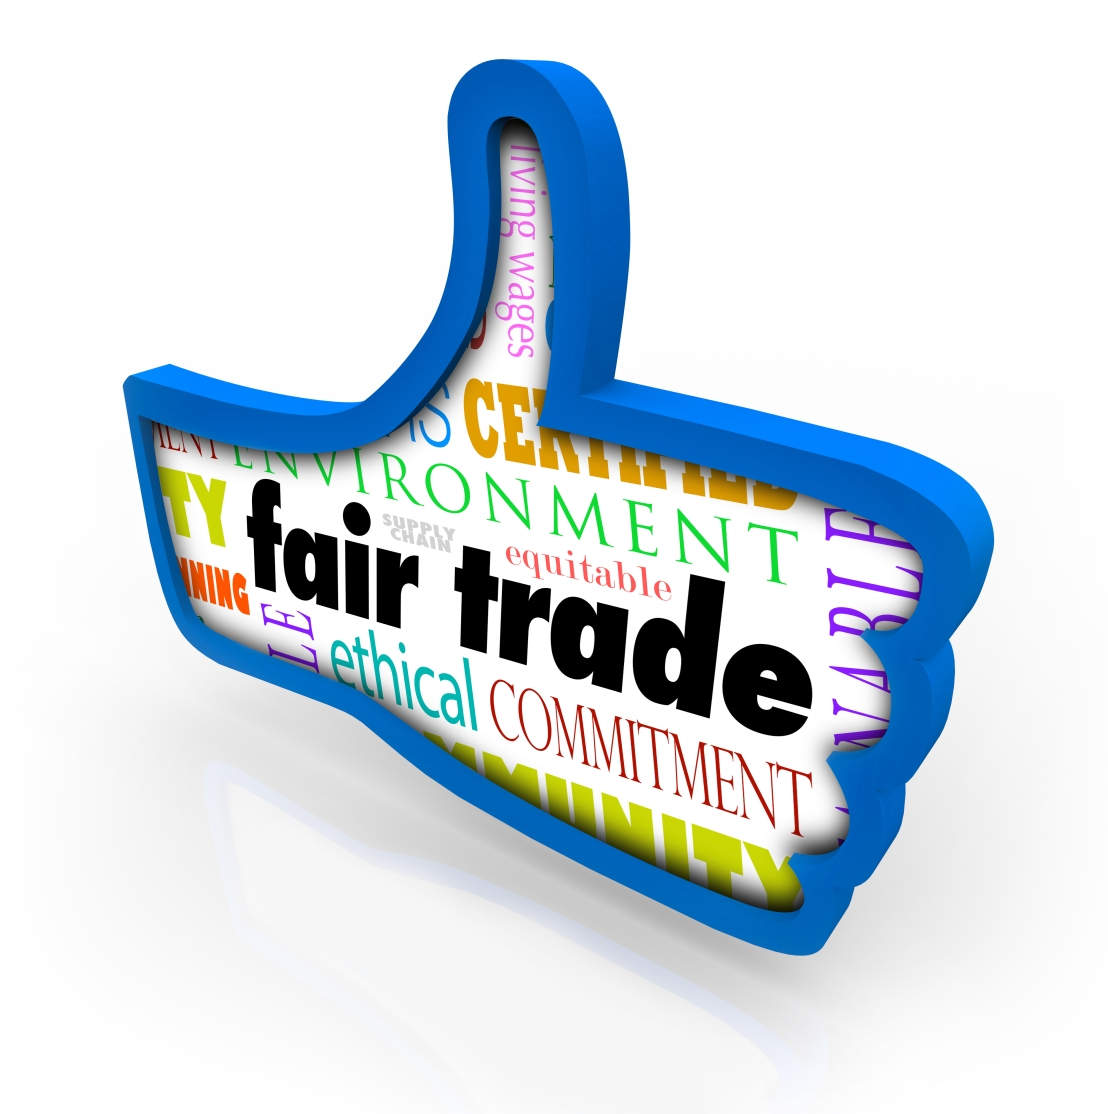 Fair Trade Blue Thumbs Up Words Responsible Business Approval Li